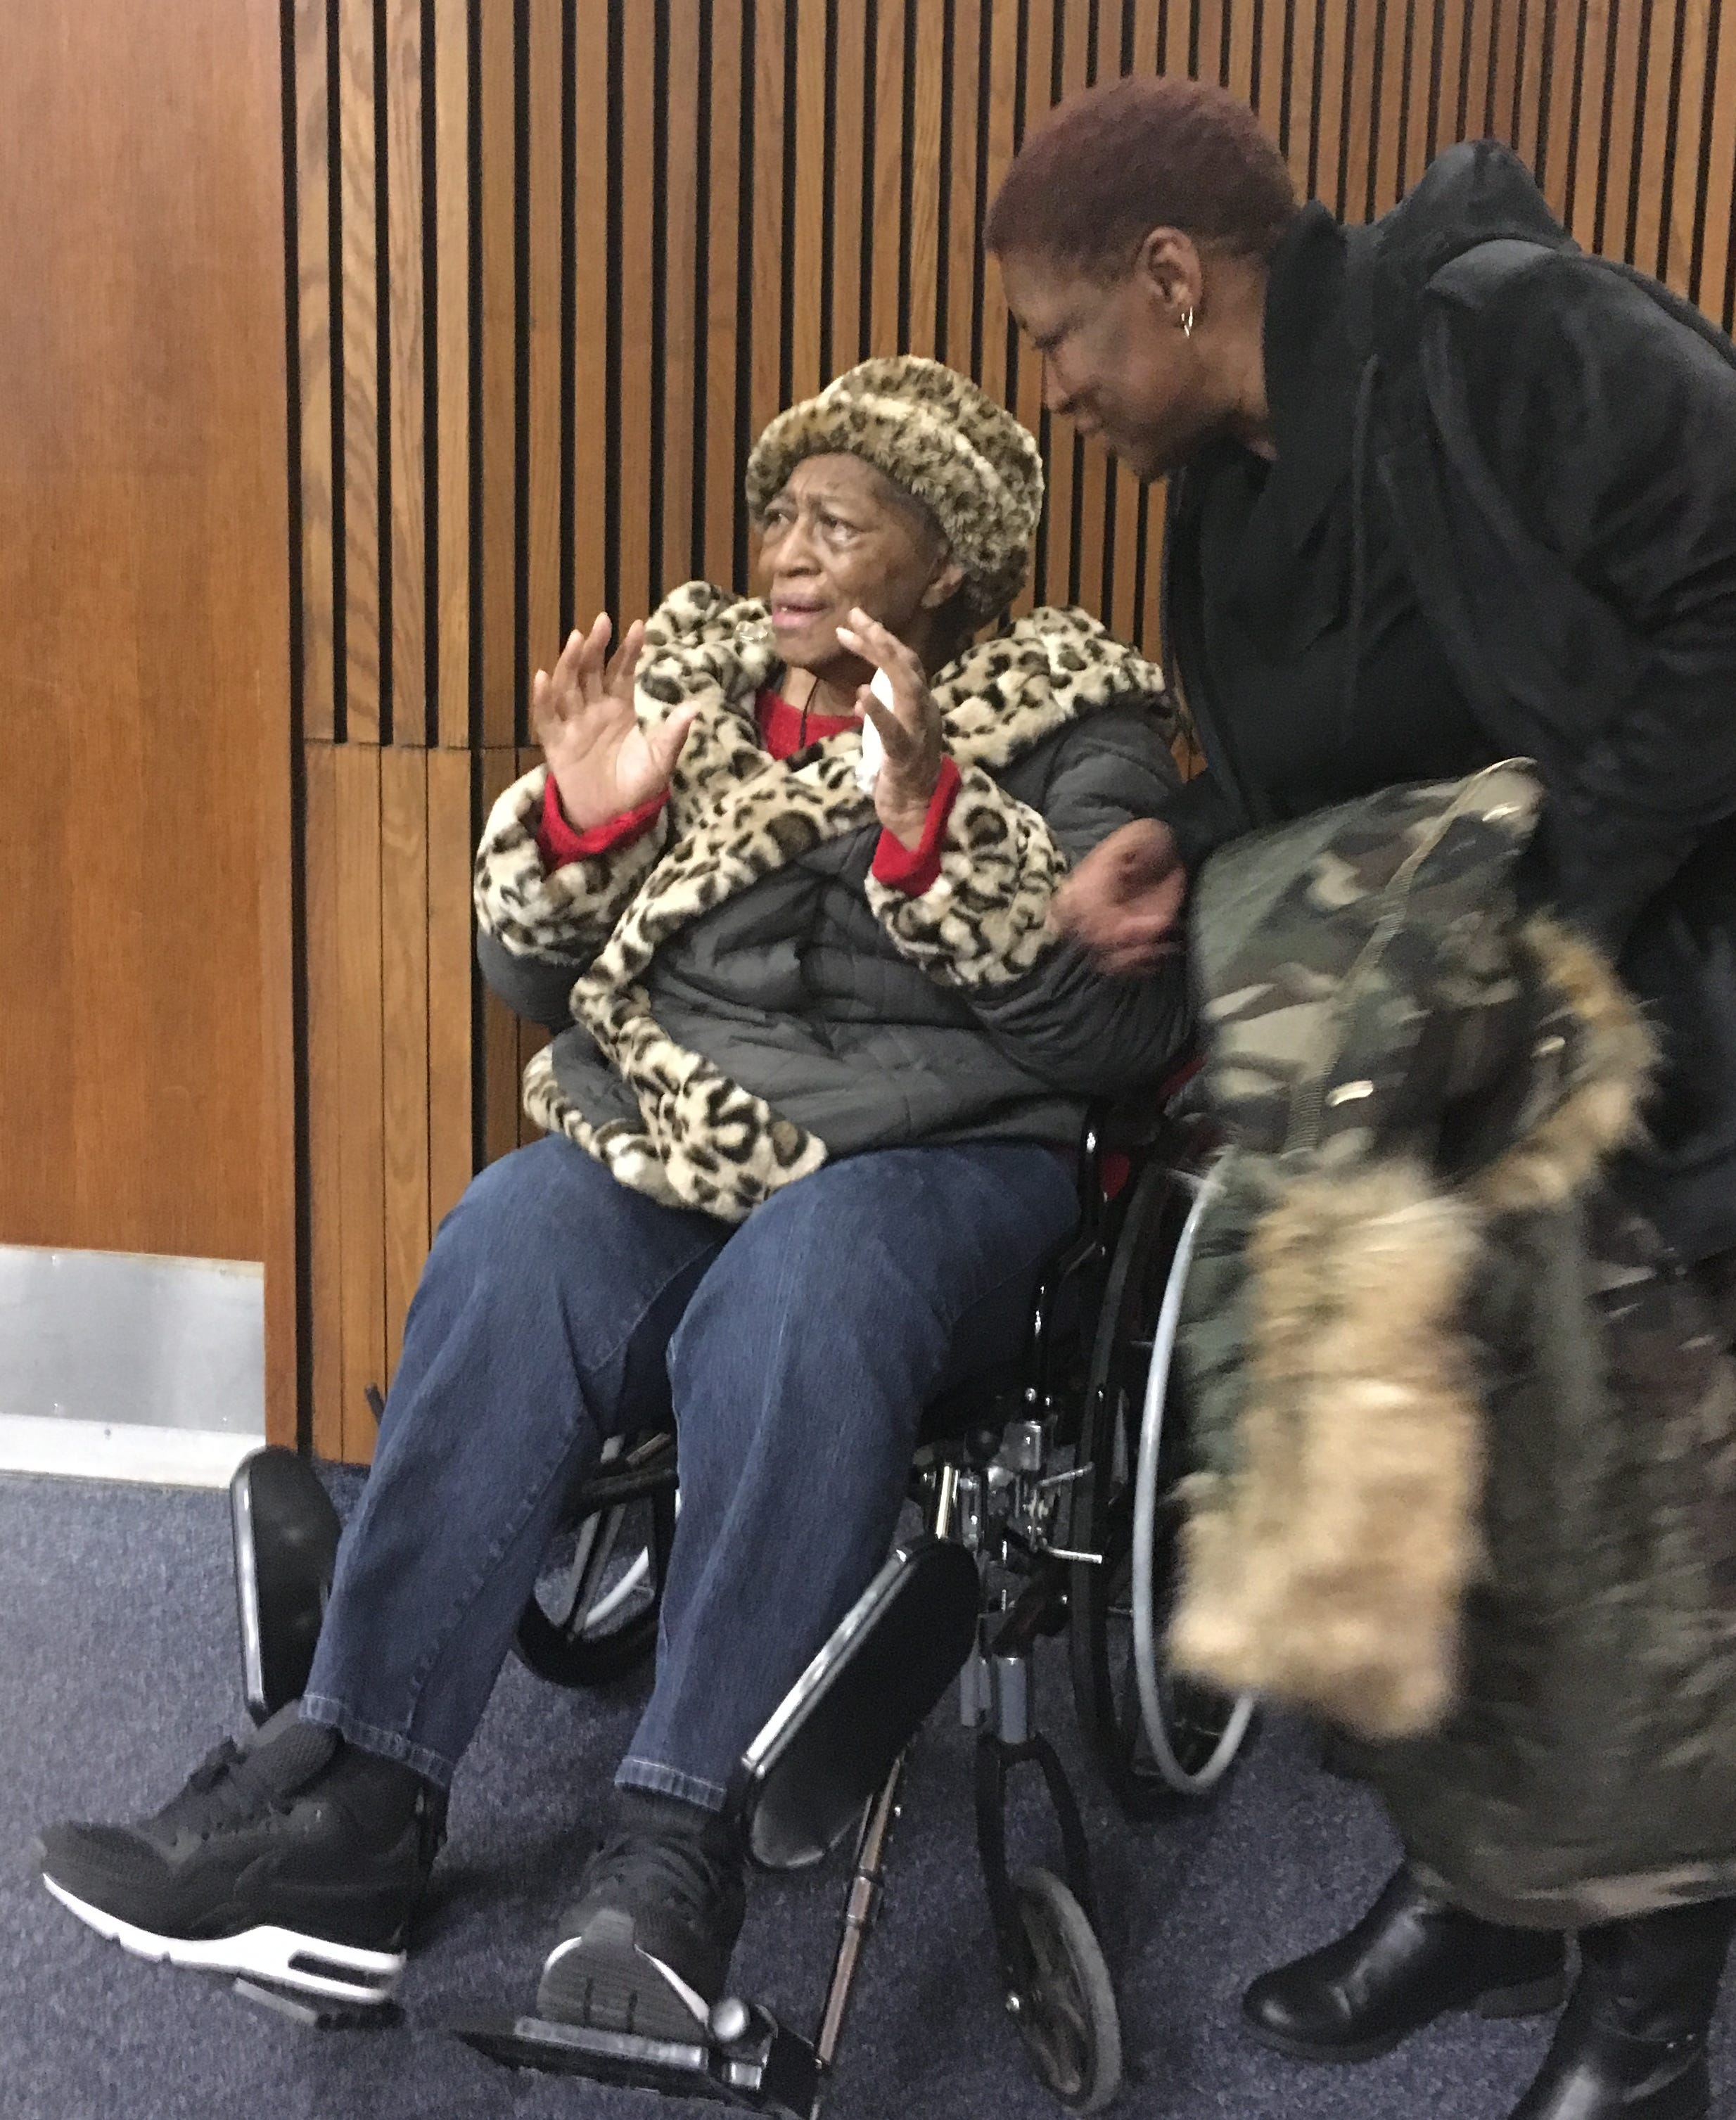 Earnestine Smith, the mother of Kendrick Scott, reacts to news that her son and his co defendant were exonerated Wednesday of a 1999 murder conviction.